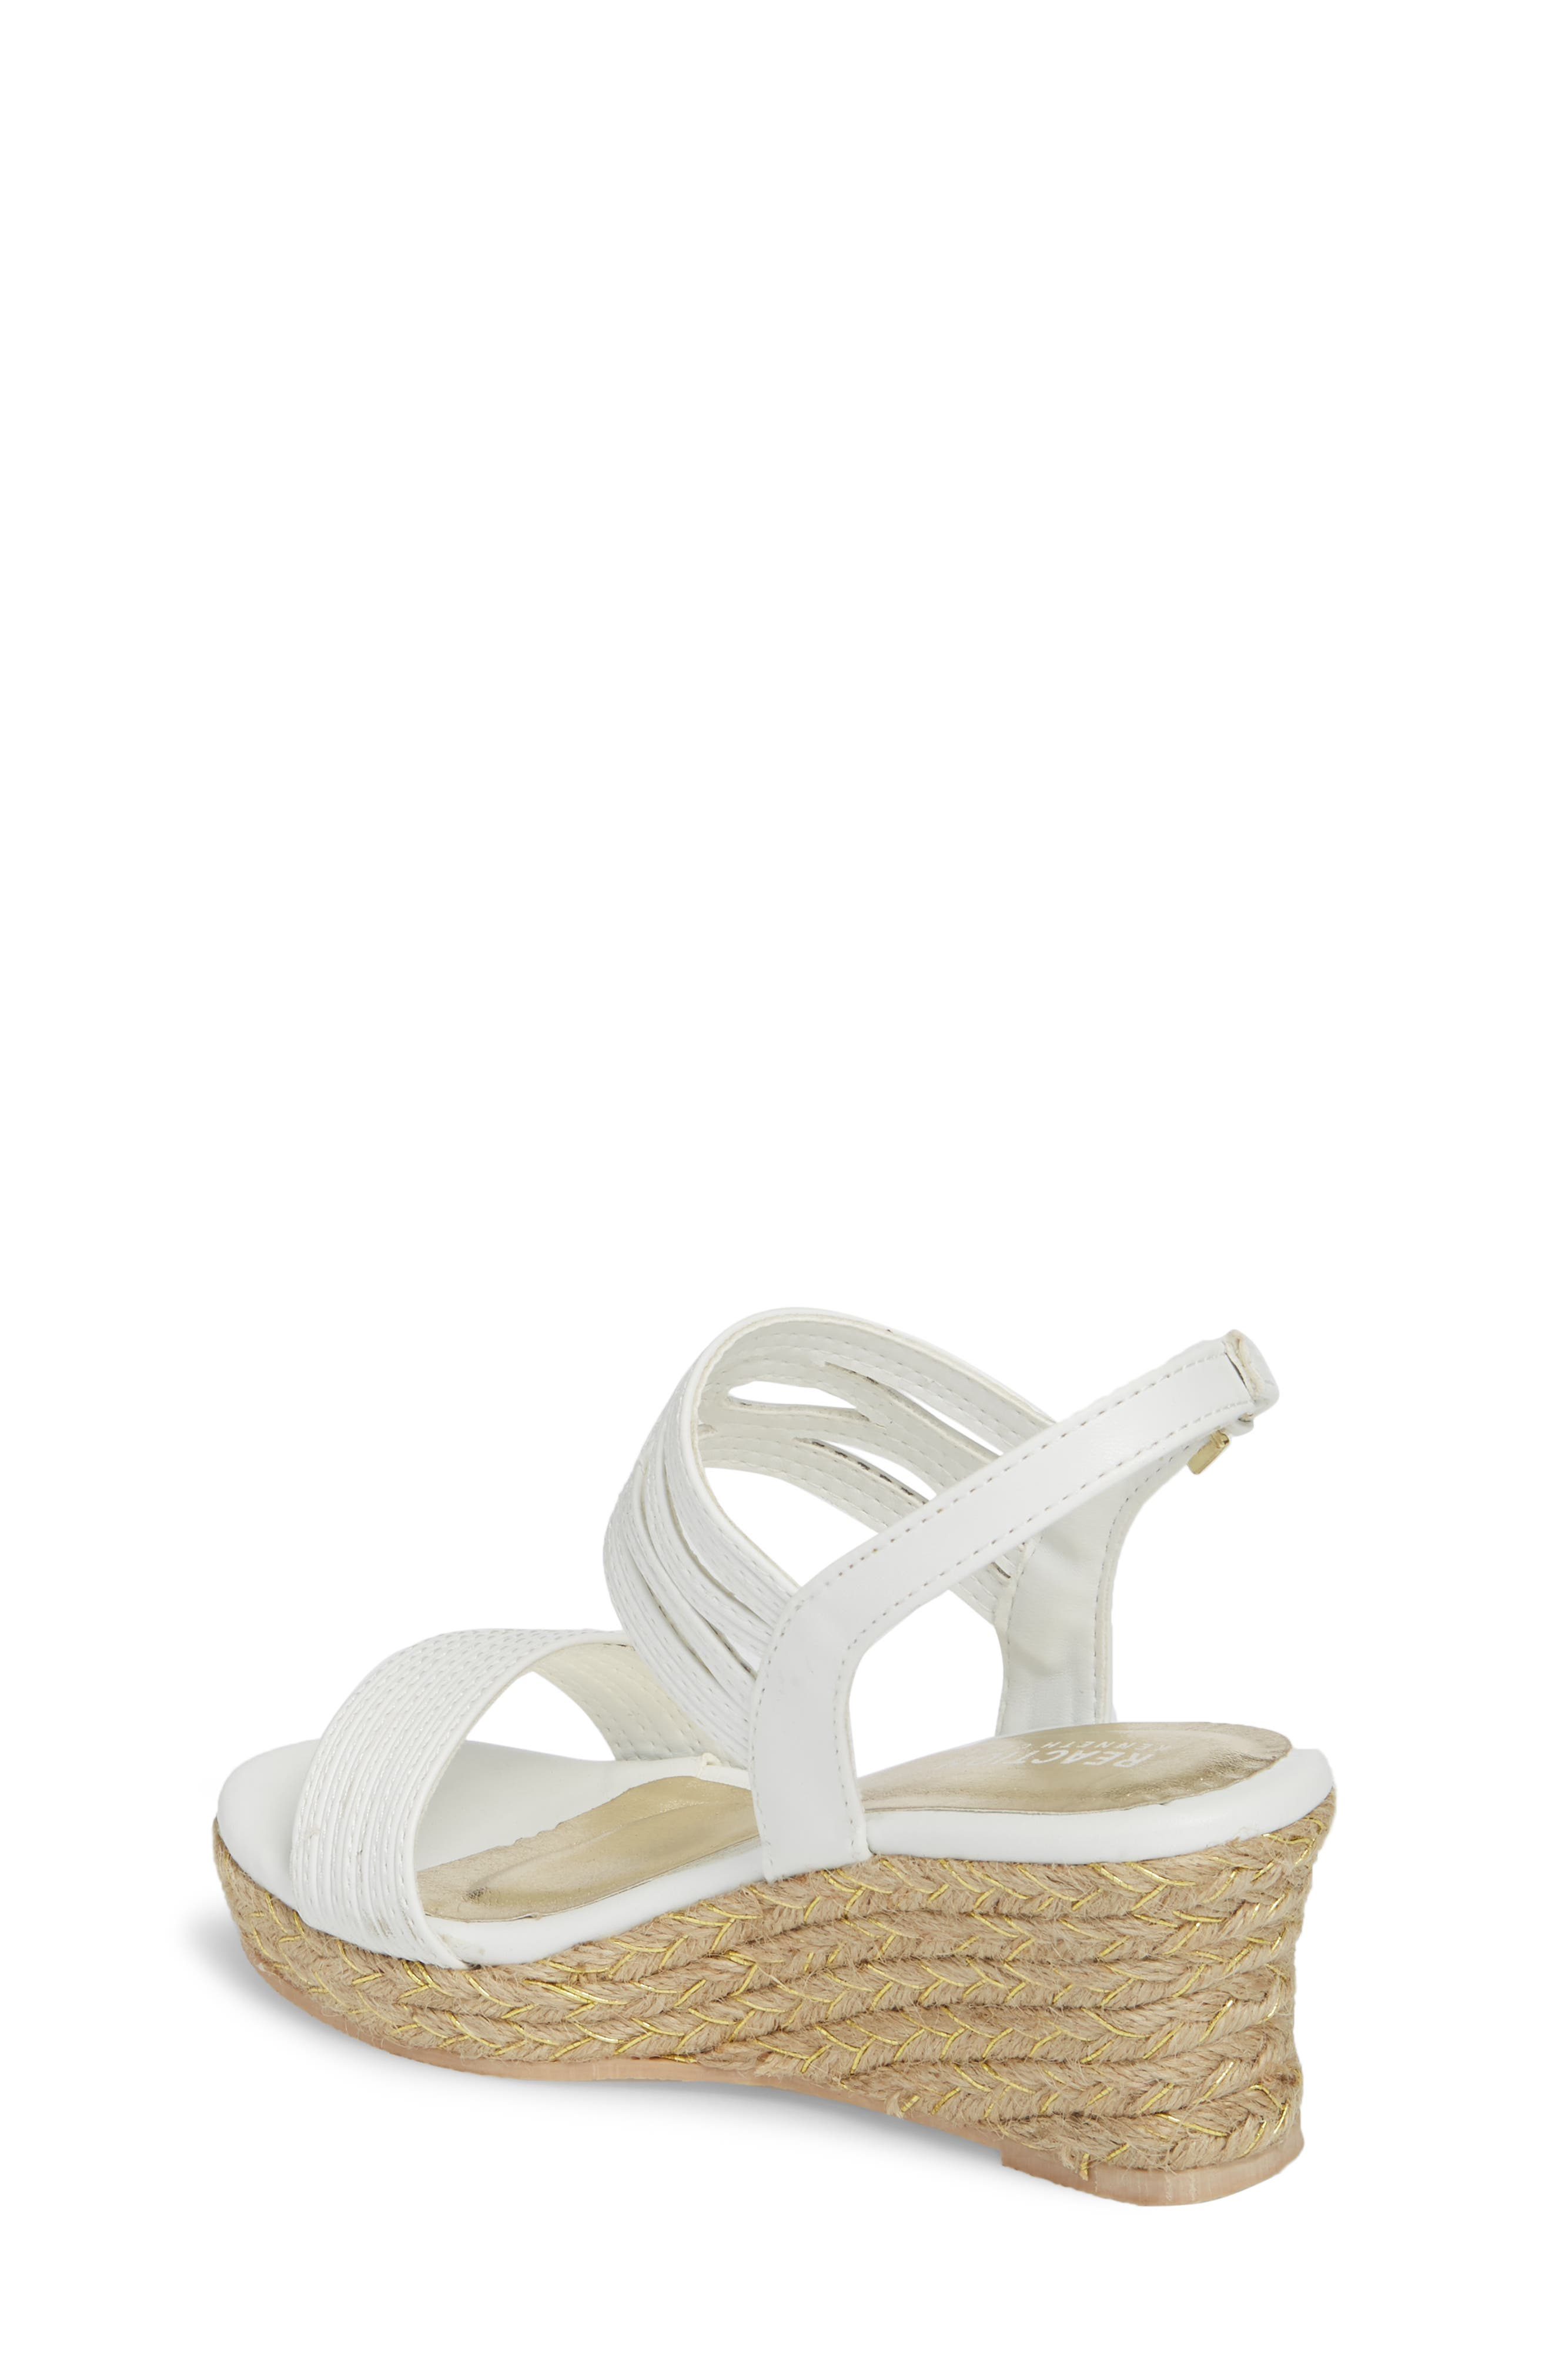 Reed Day Wedge Sandal,                             Alternate thumbnail 2, color,                             White